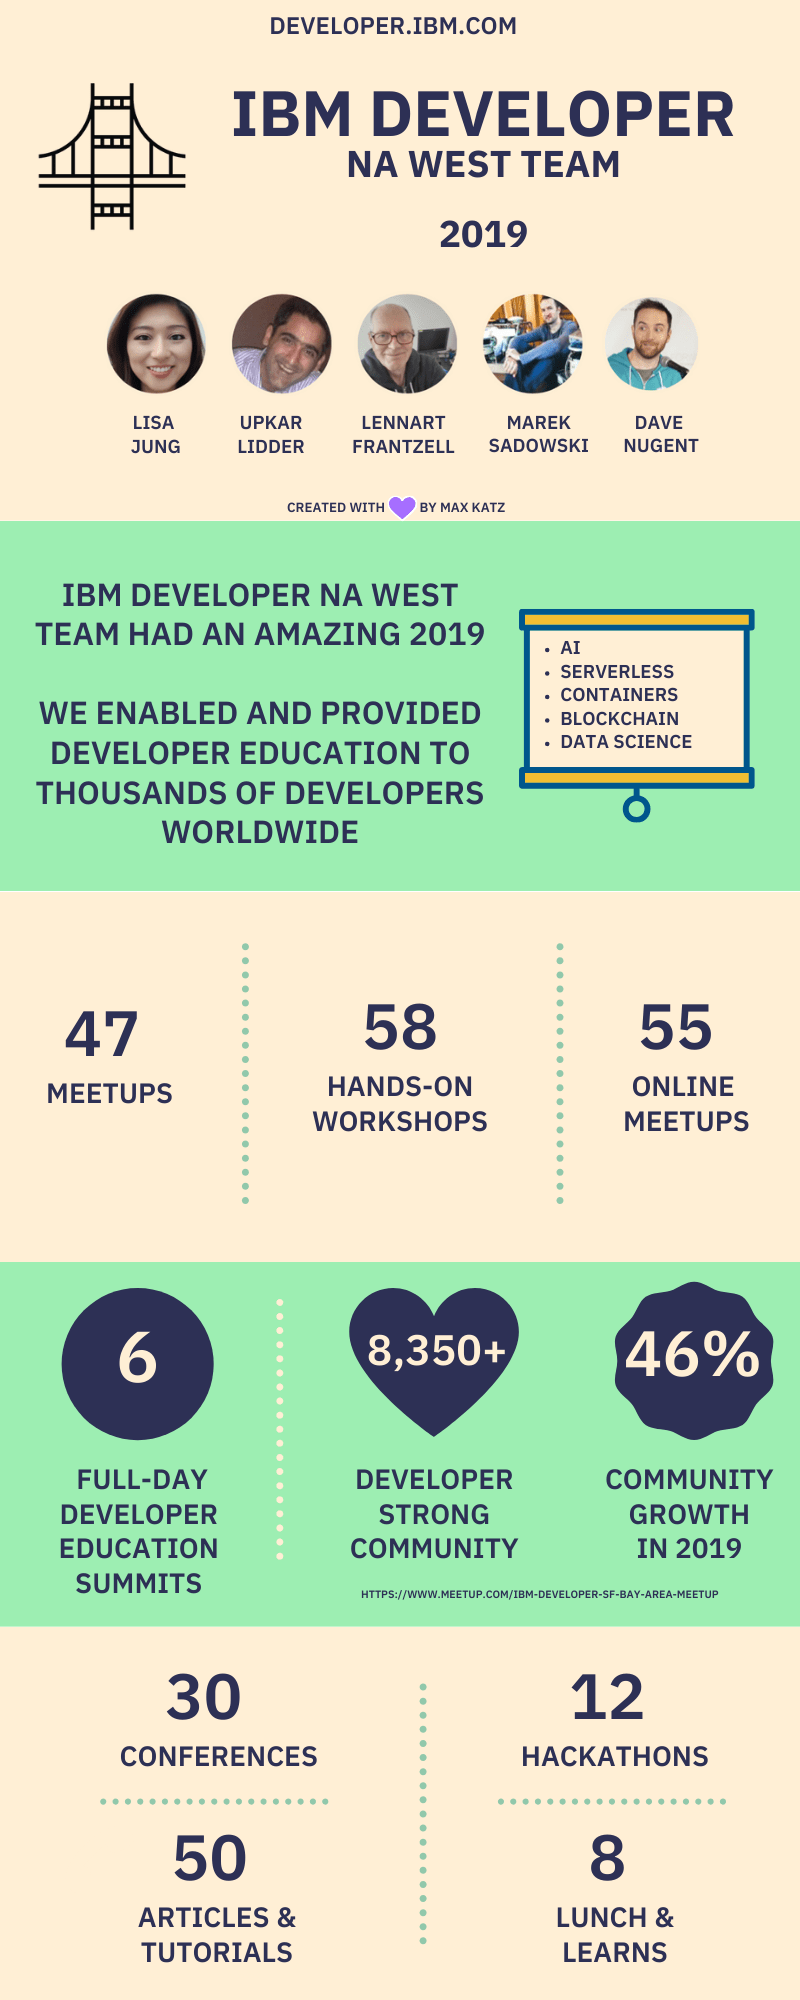 IBMDeveloperSF2019-infographic_2